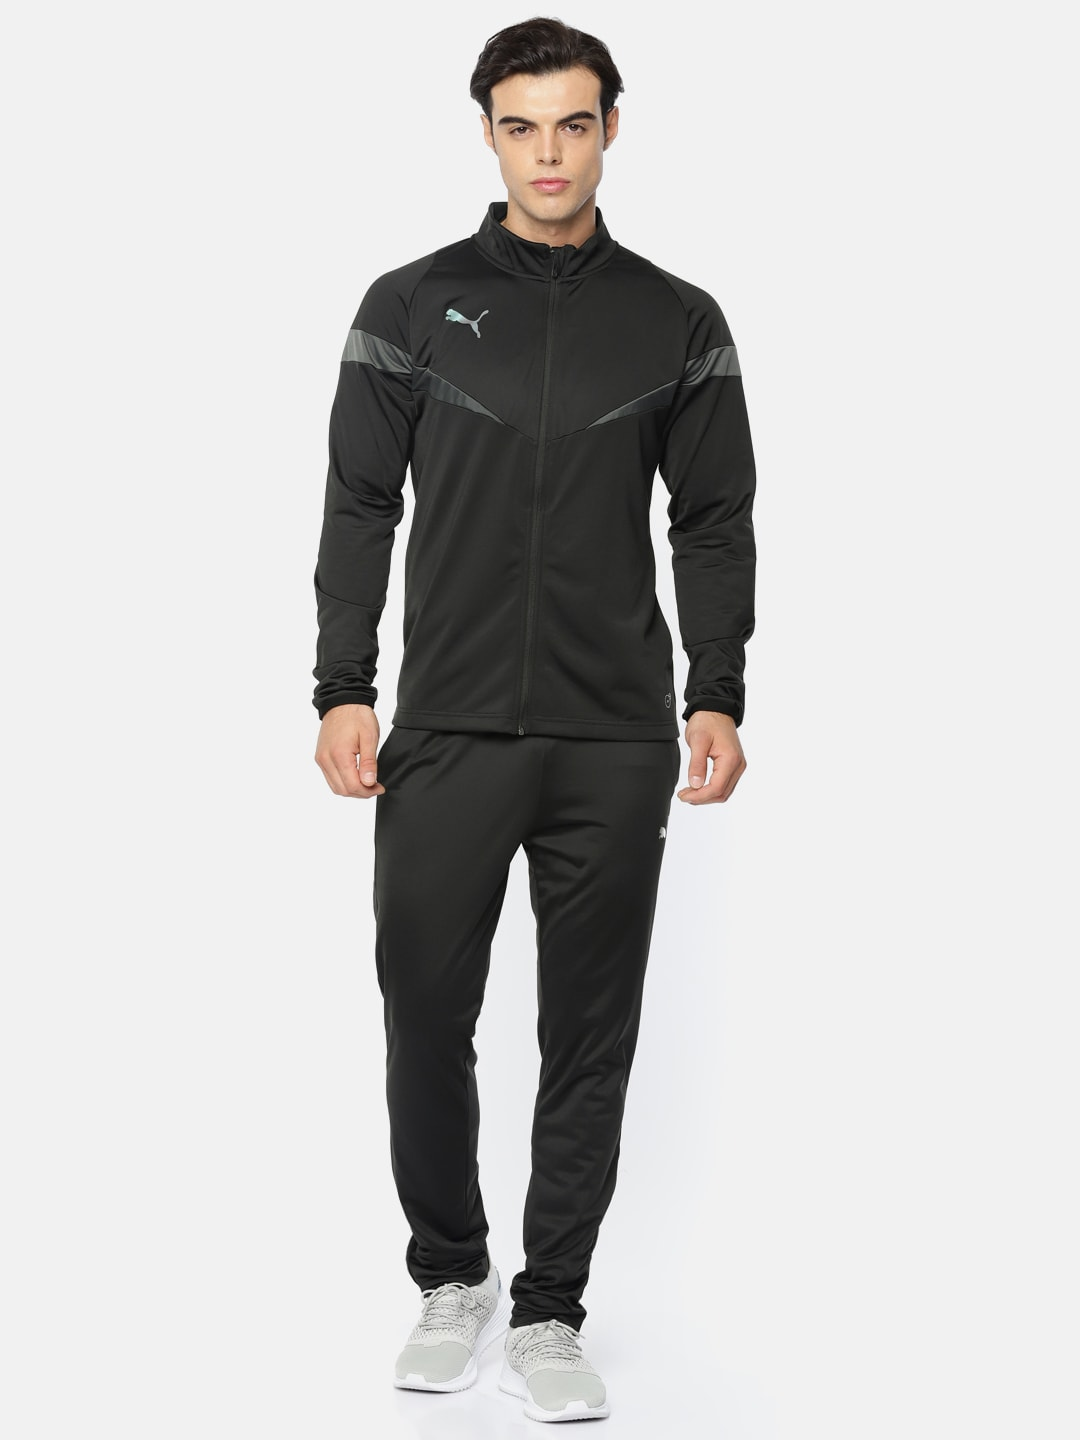 a56adc7a6 Puma Harpa Tracksuits - Buy Puma Harpa Tracksuits online in India